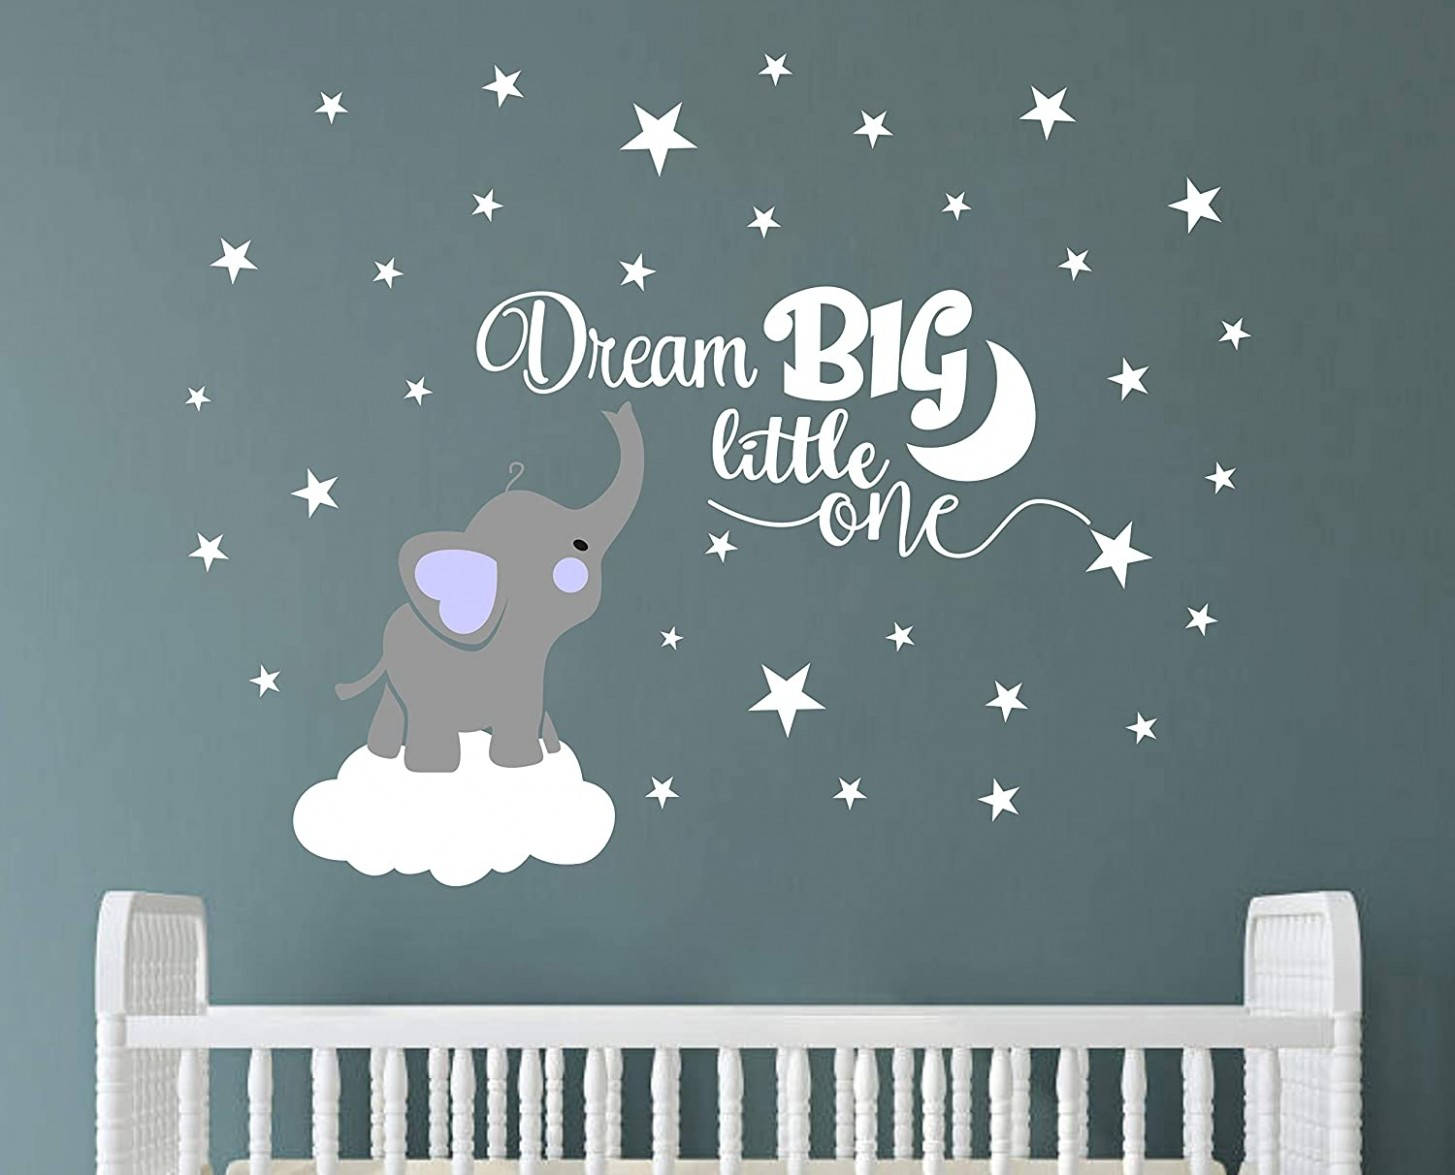 Dream Big Little One Elephant Wall Decal, Quote Wall Stickers, Baby Room  Wall Decor, Vinyl Wall Decals for Children Baby Kids Boy Girl Bedroom  Nursery  - Baby Room Wall Decals